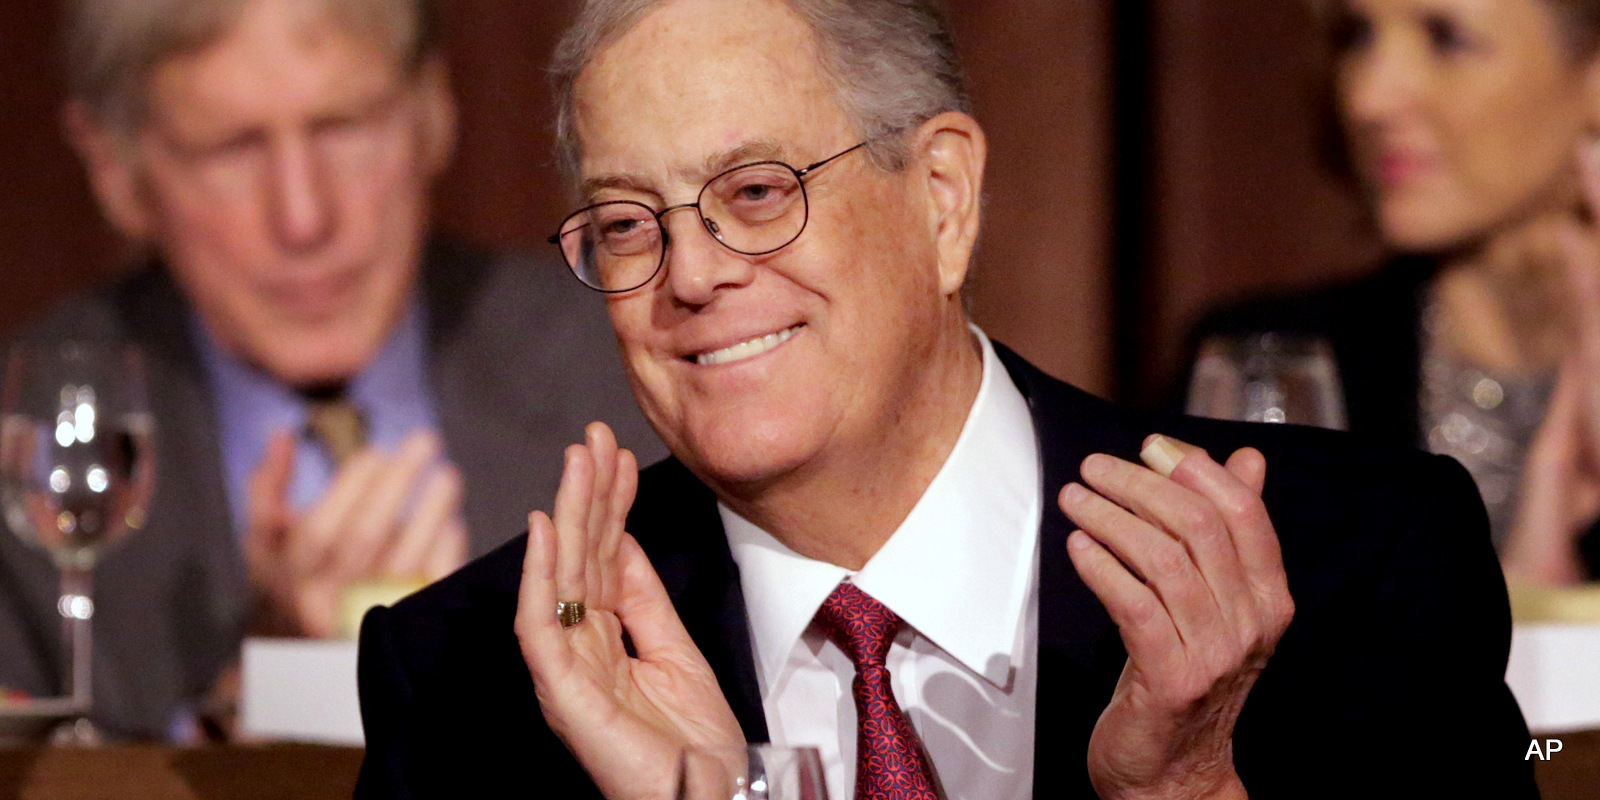 David Koch, Executive Vice President of Koch Industries, Inc., attends The Economic Club of New York